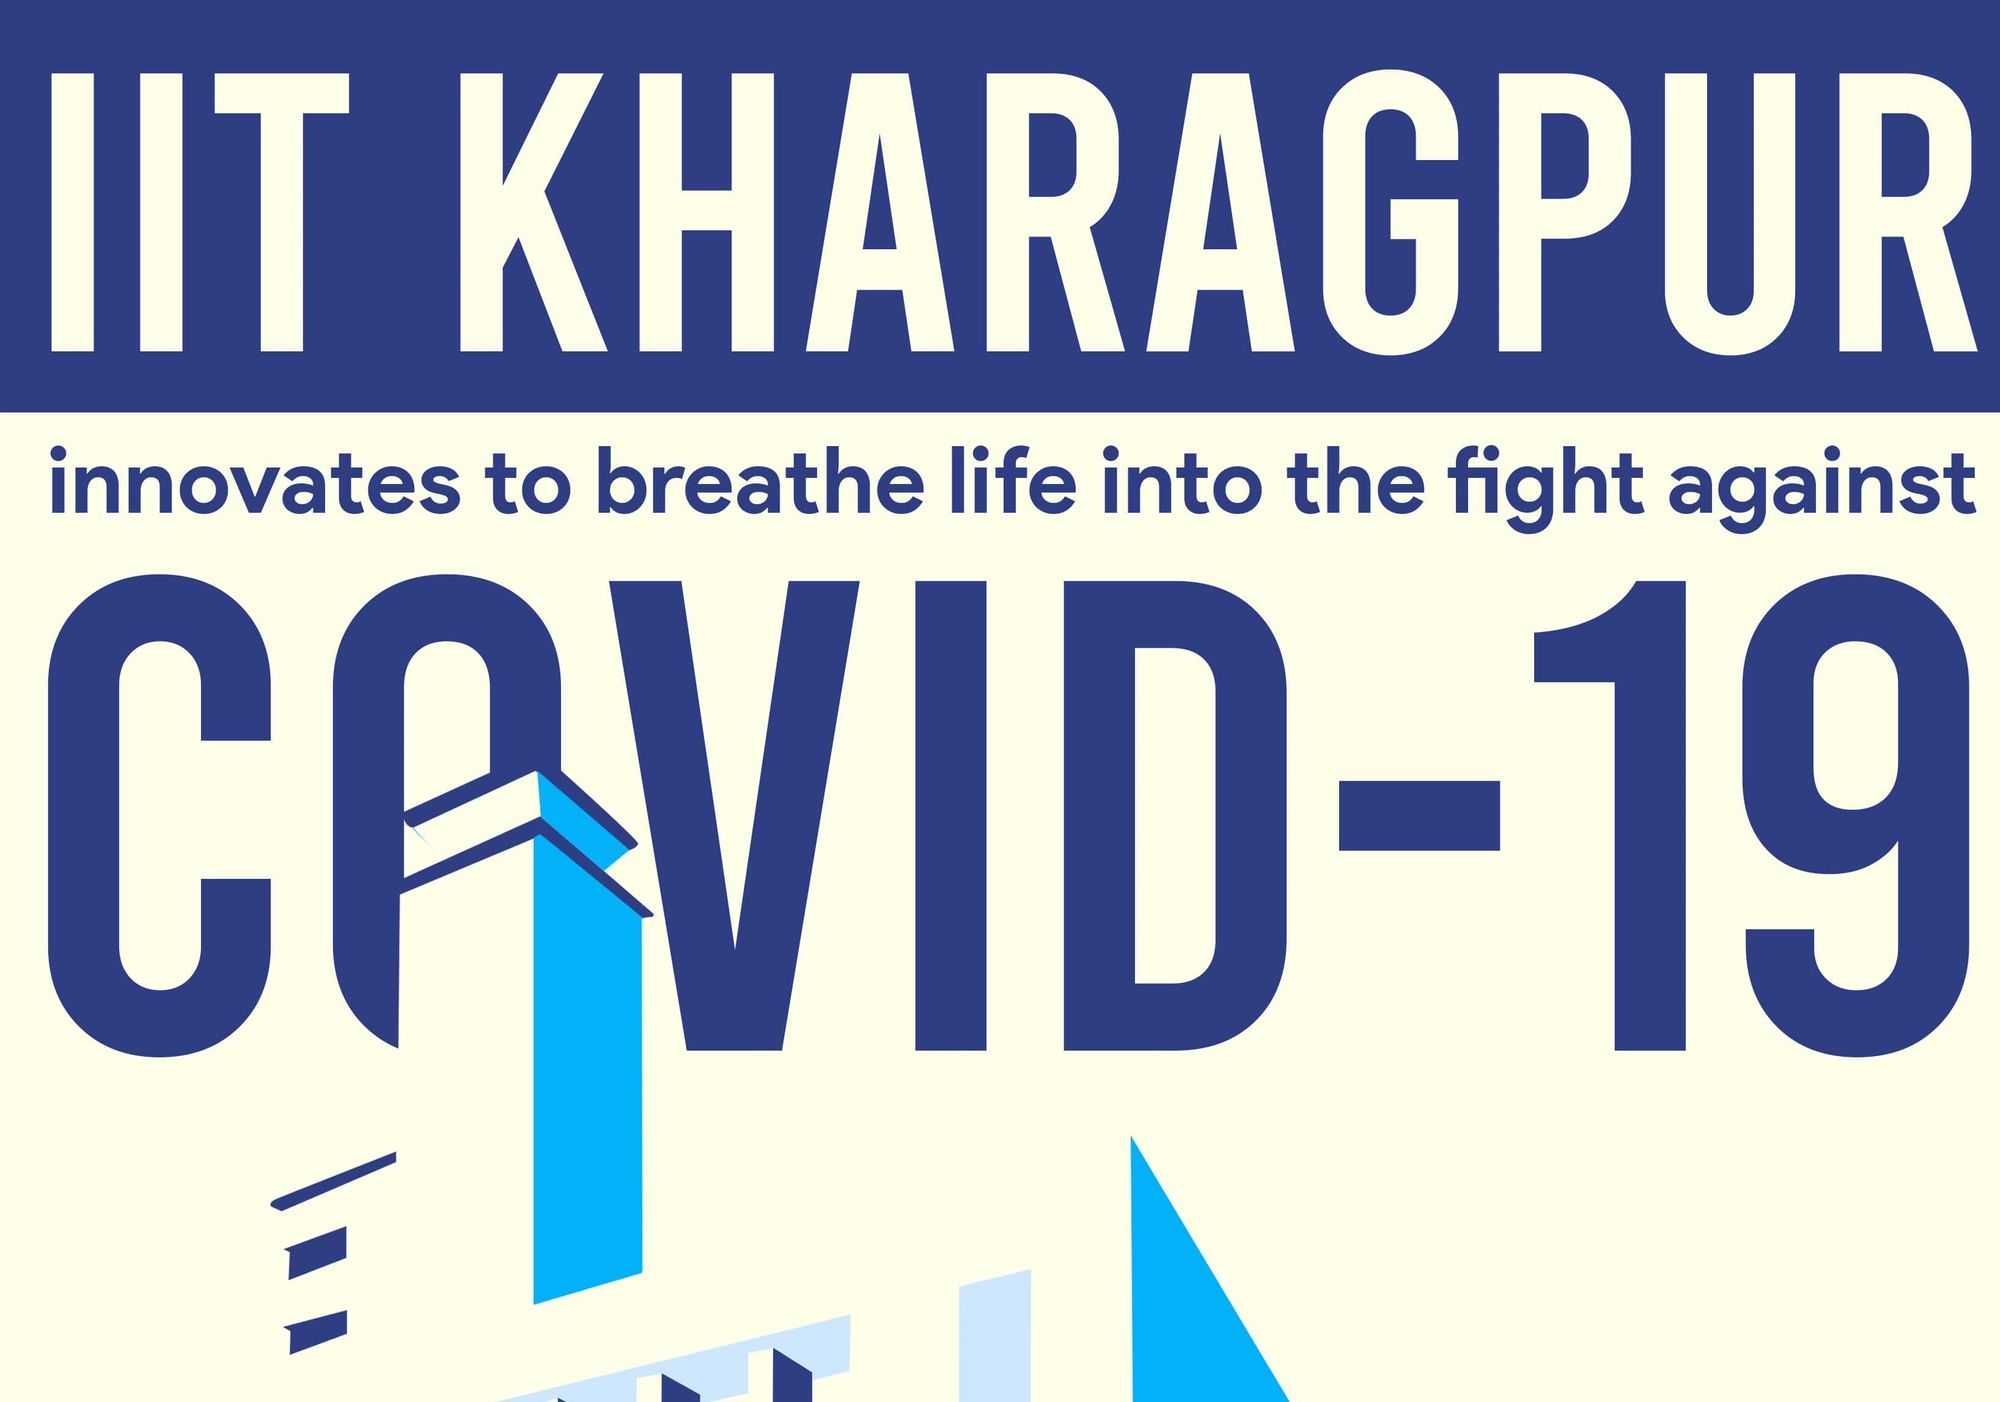 IIT Kharagpur innovates to breathe life into the fight against COVID-19